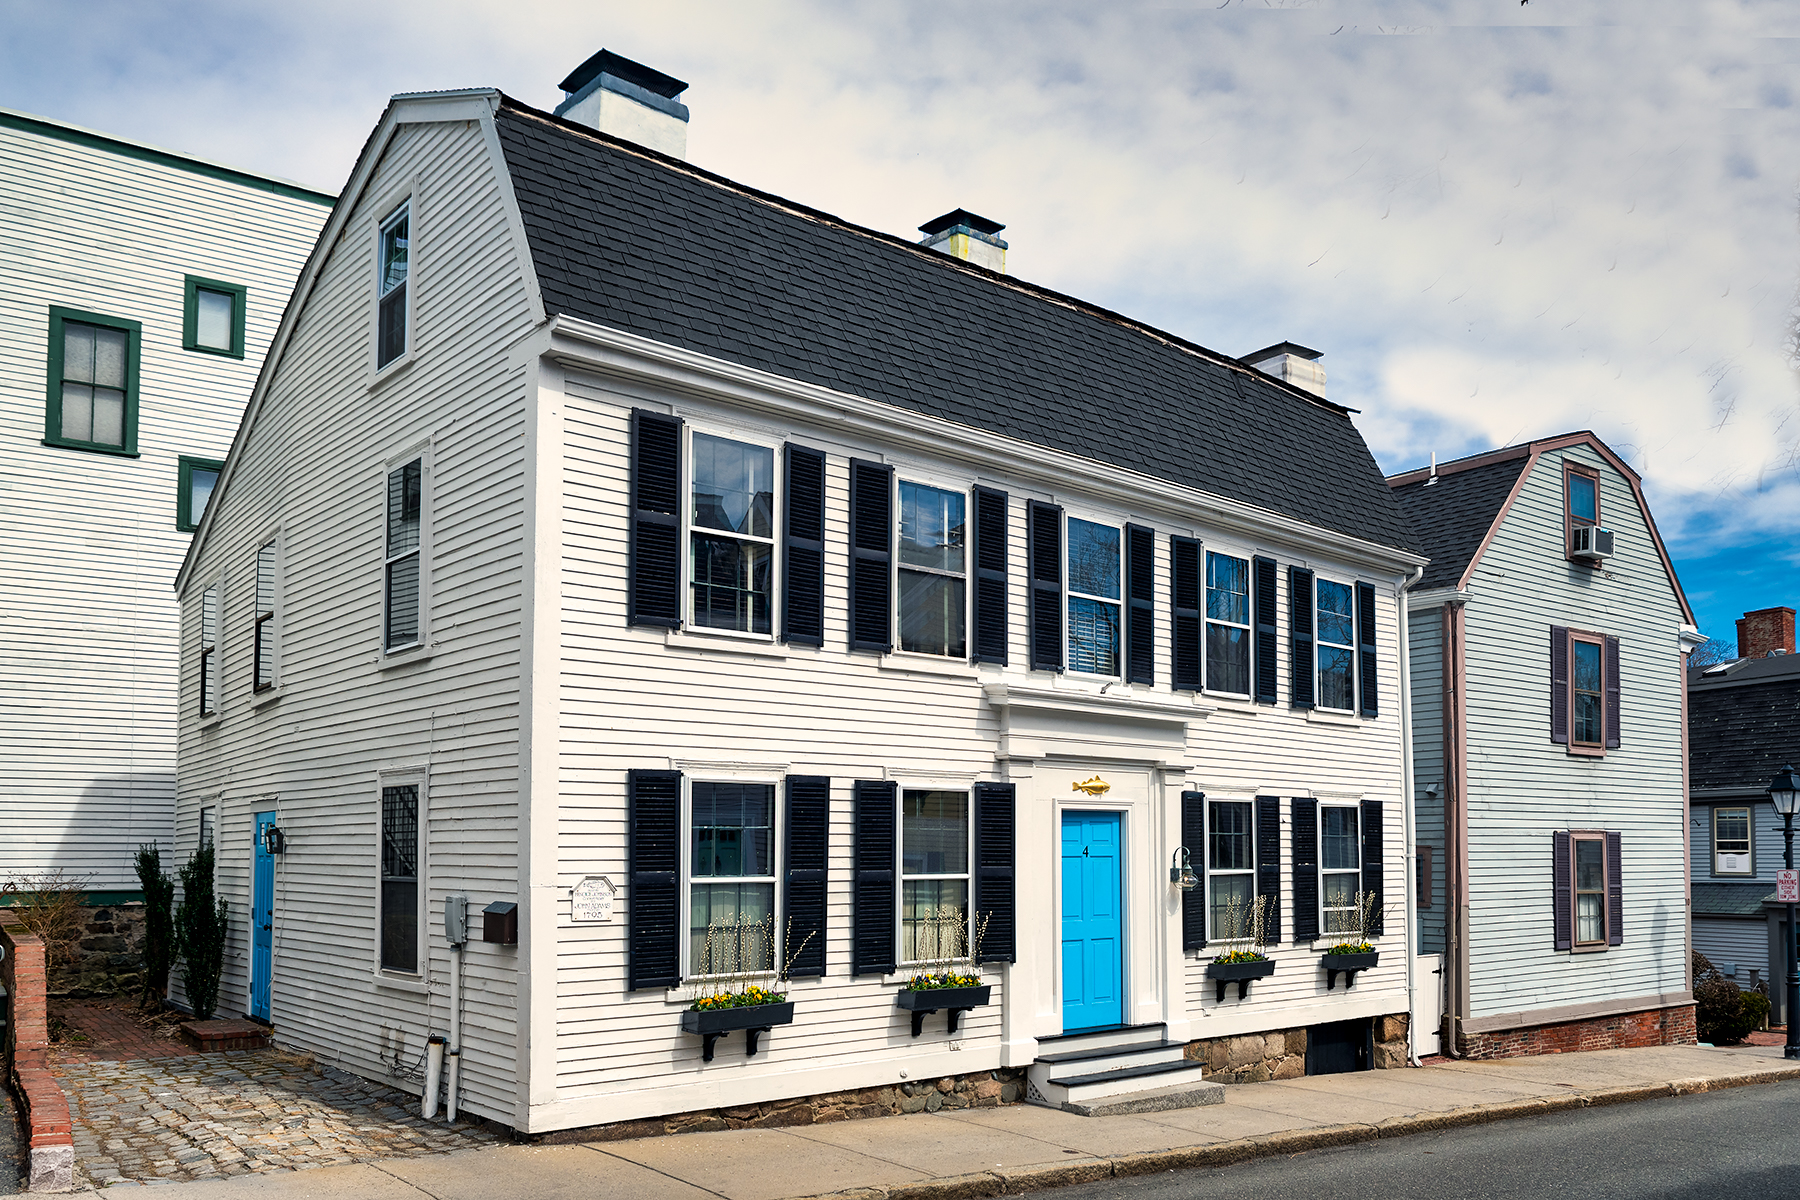 Single Family Home for Active at Beautiful and exceptionally well maintained antique colonial 4 State Street Marblehead, Massachusetts 01945 United States